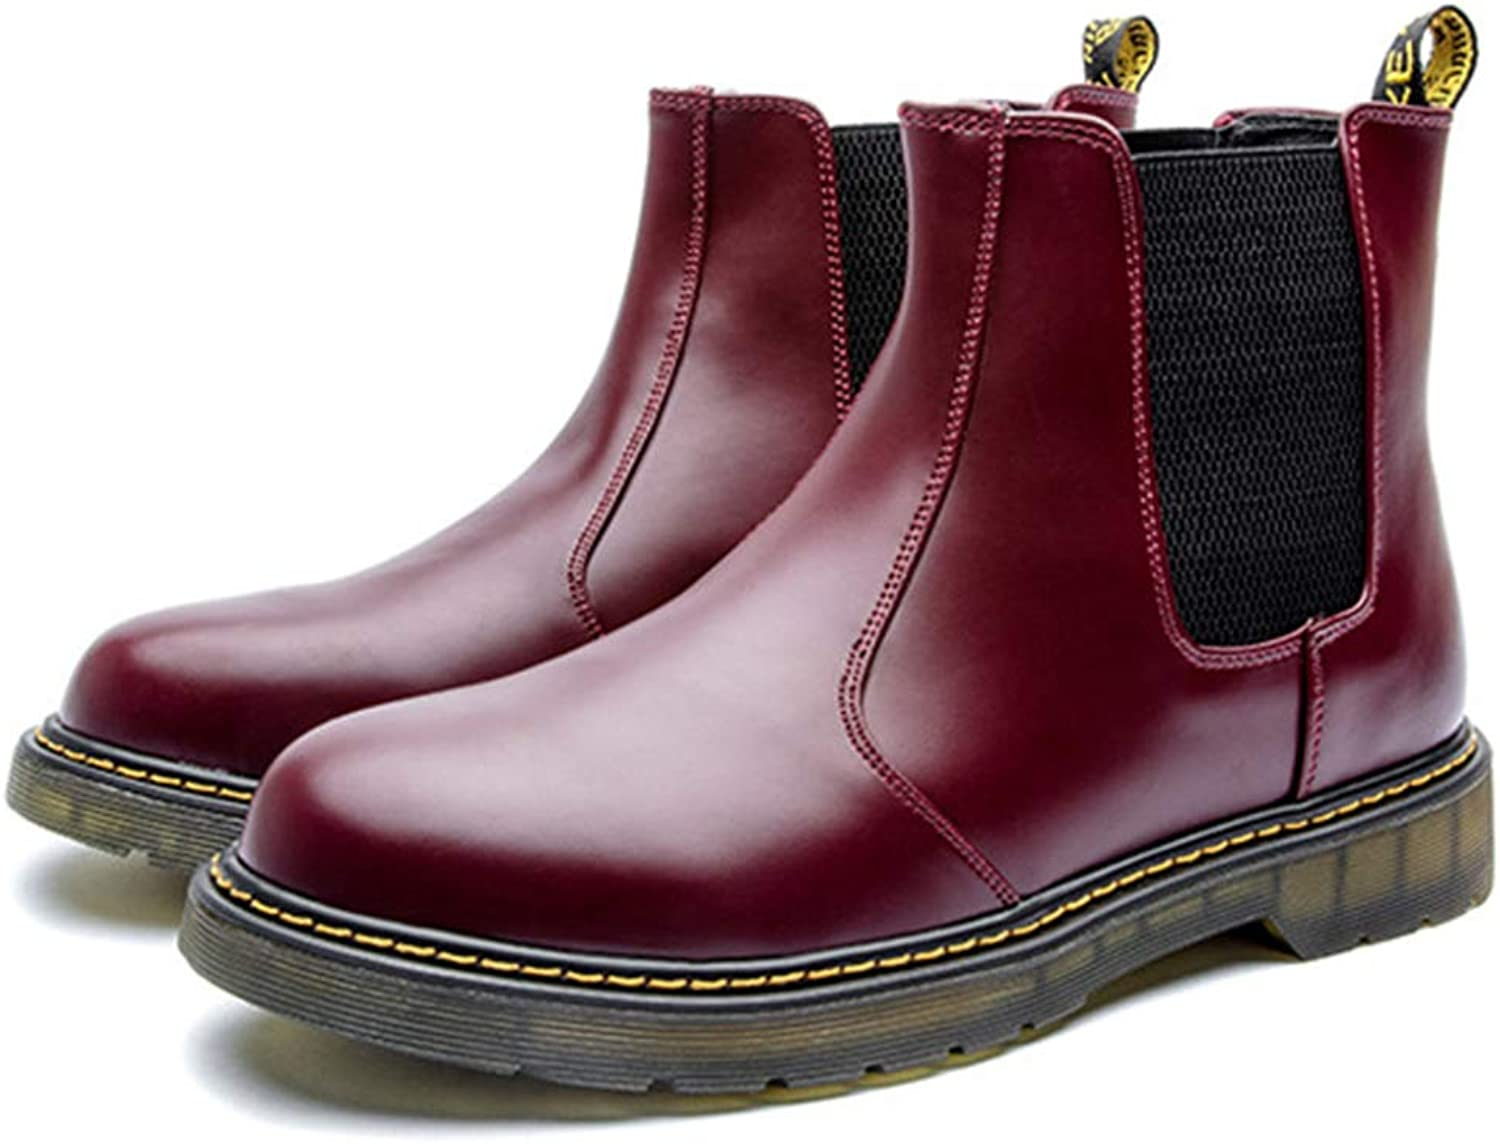 Men'S Chelsea Boots Martin Boots Oxford Ankle Boots Leather Outdoor Desert Boots Hiking Riding Boots